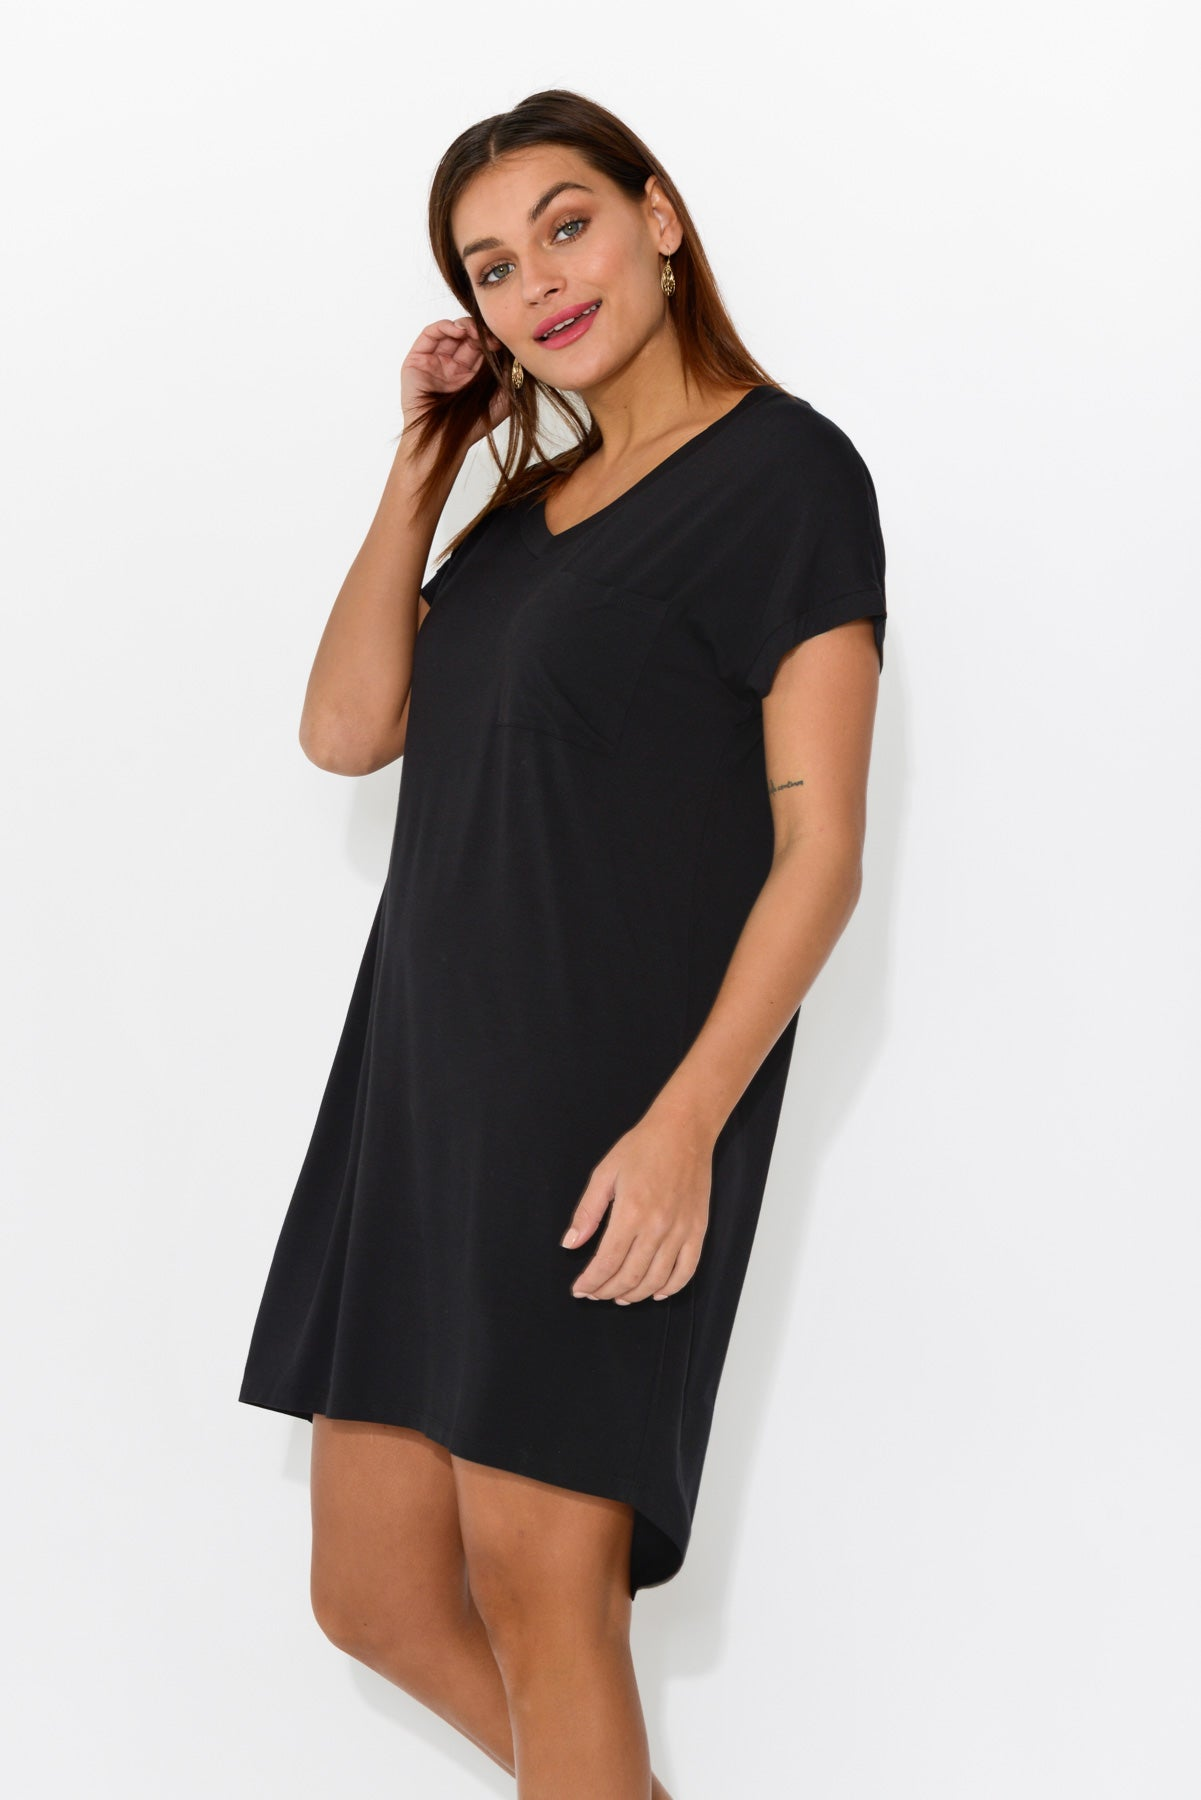 Arizona Black Tee Dress - Blue Bungalow